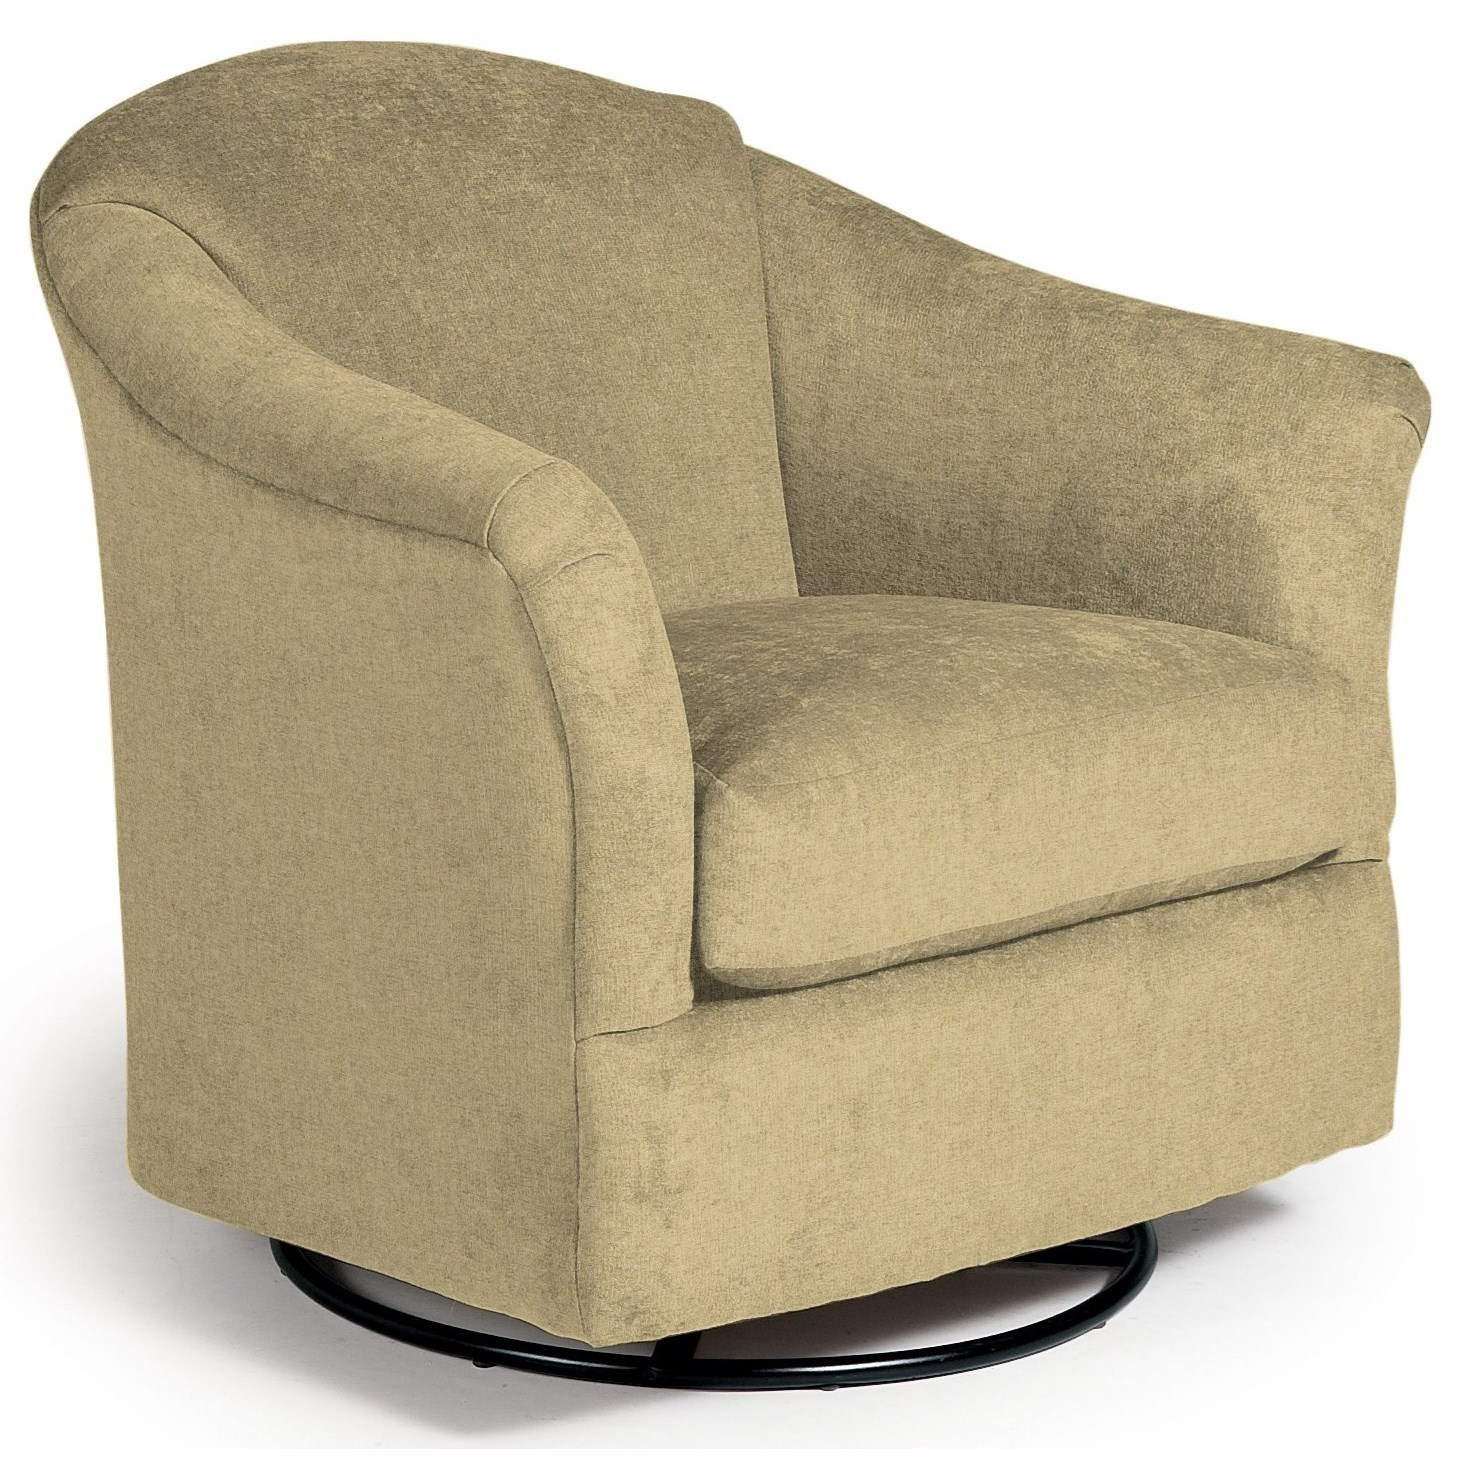 Swivel Glide Chairs Darby Swivel Glider by Best Home Furnishings at Lucas Furniture & Mattress